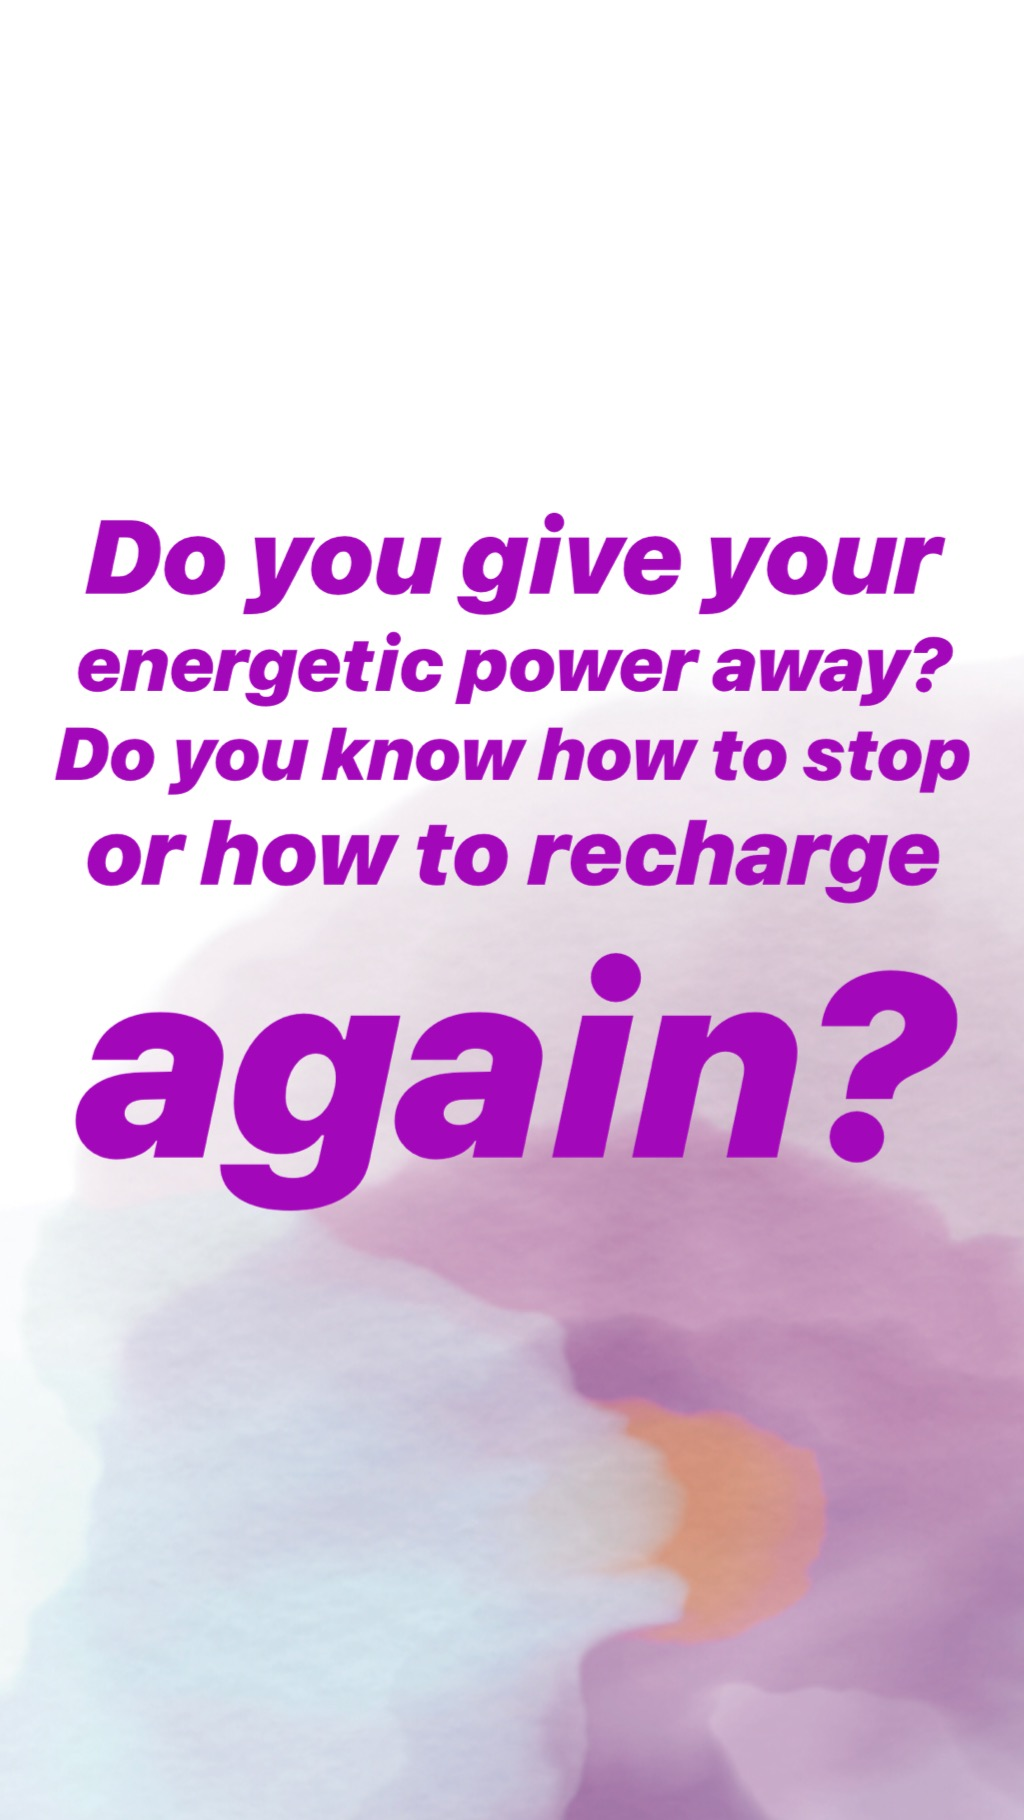 Power giving